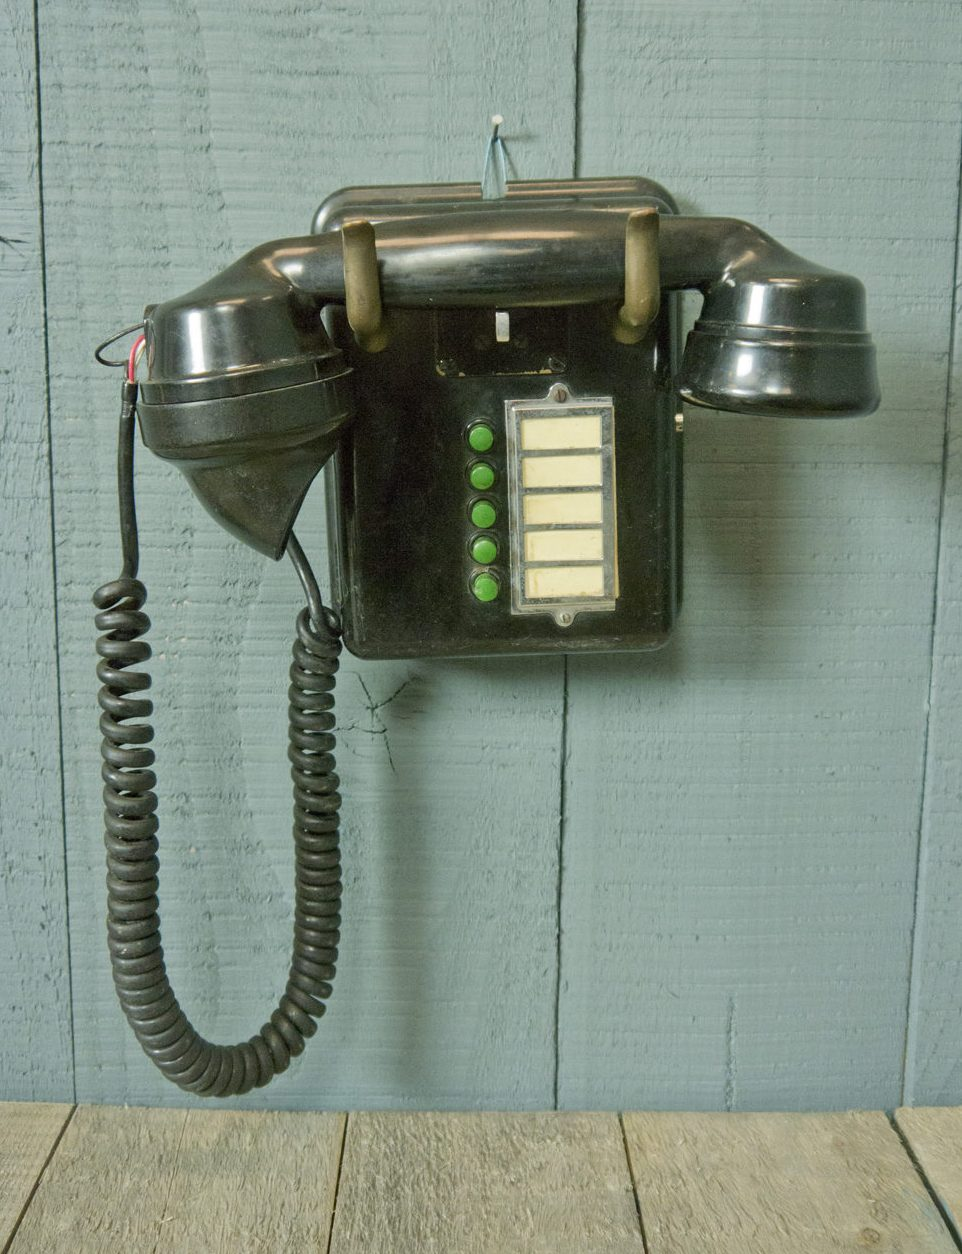 Internal Wall Telephone – 5 Green Buttons